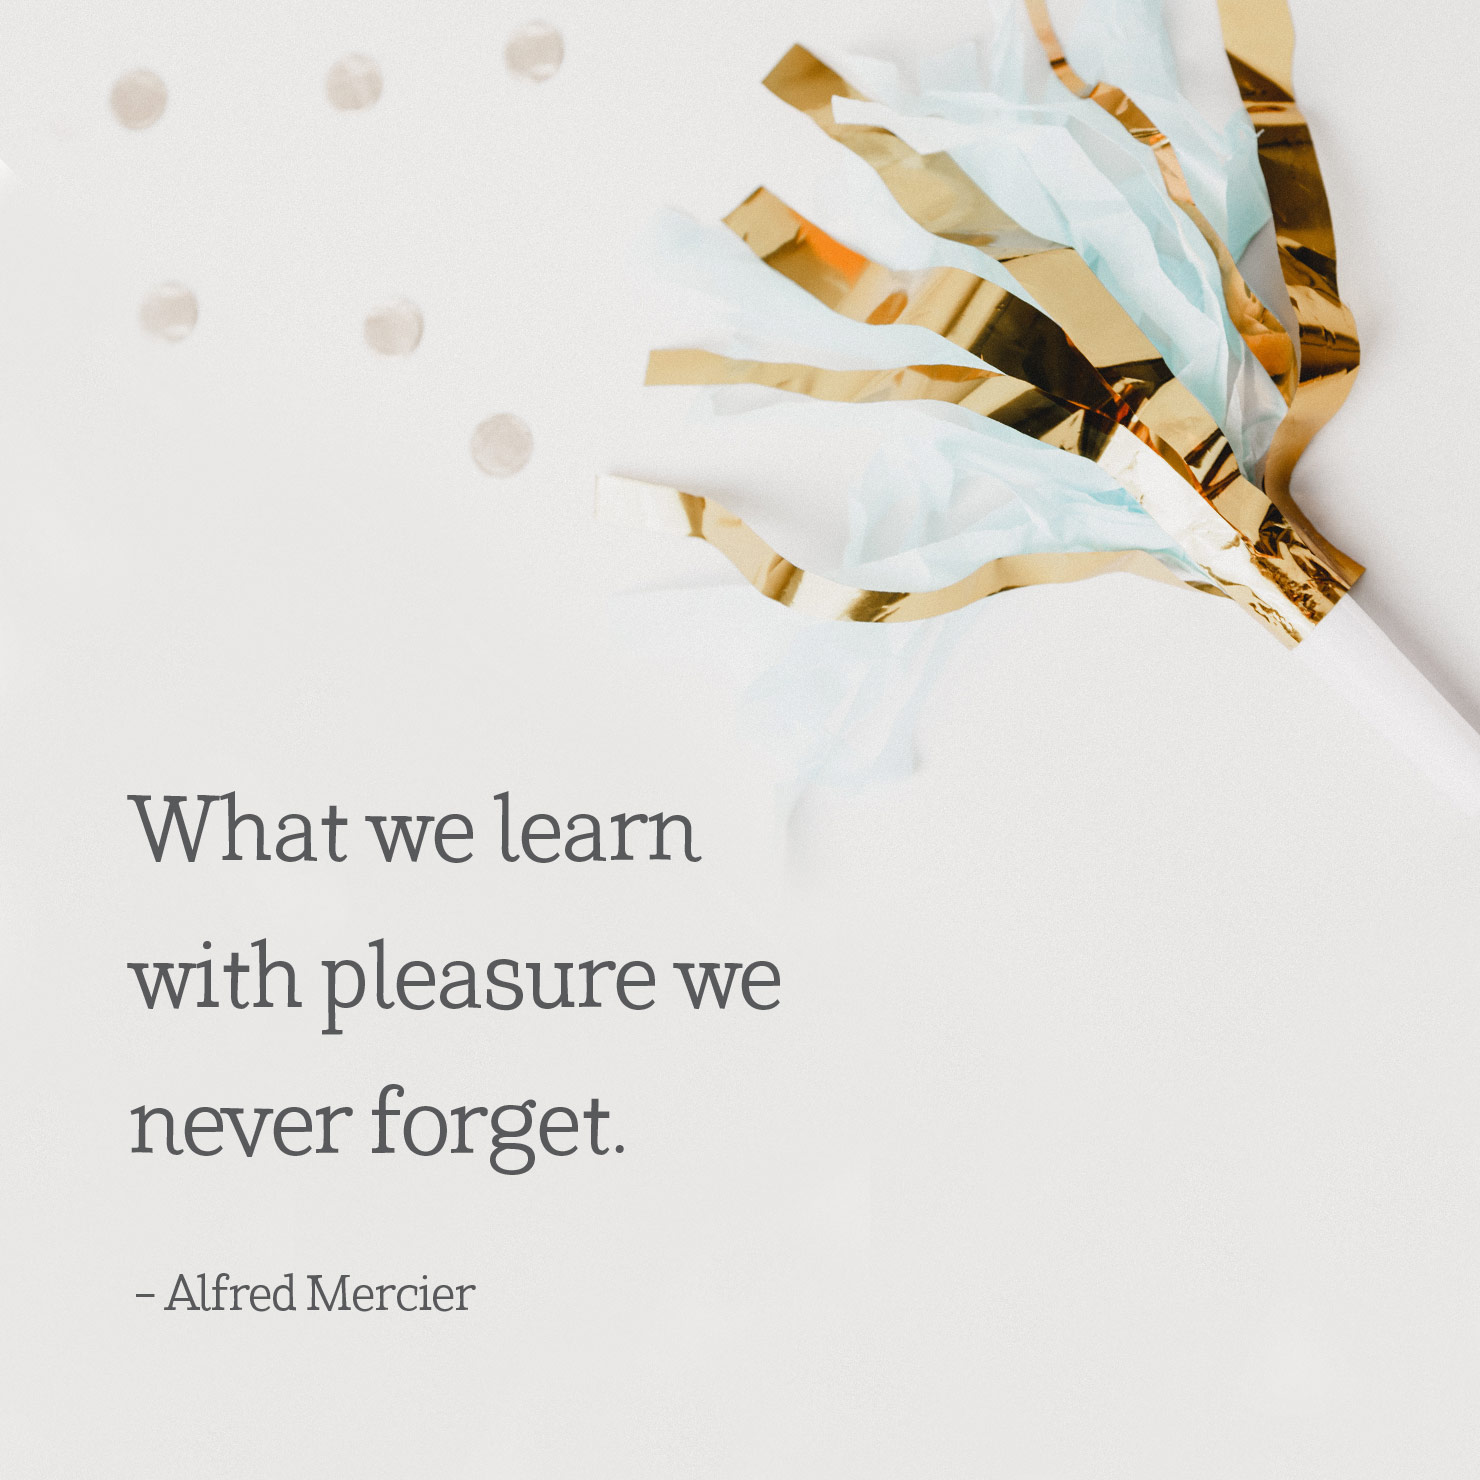 college graduation quote: what we learn with pleasure we never forget - Alfred Mercier